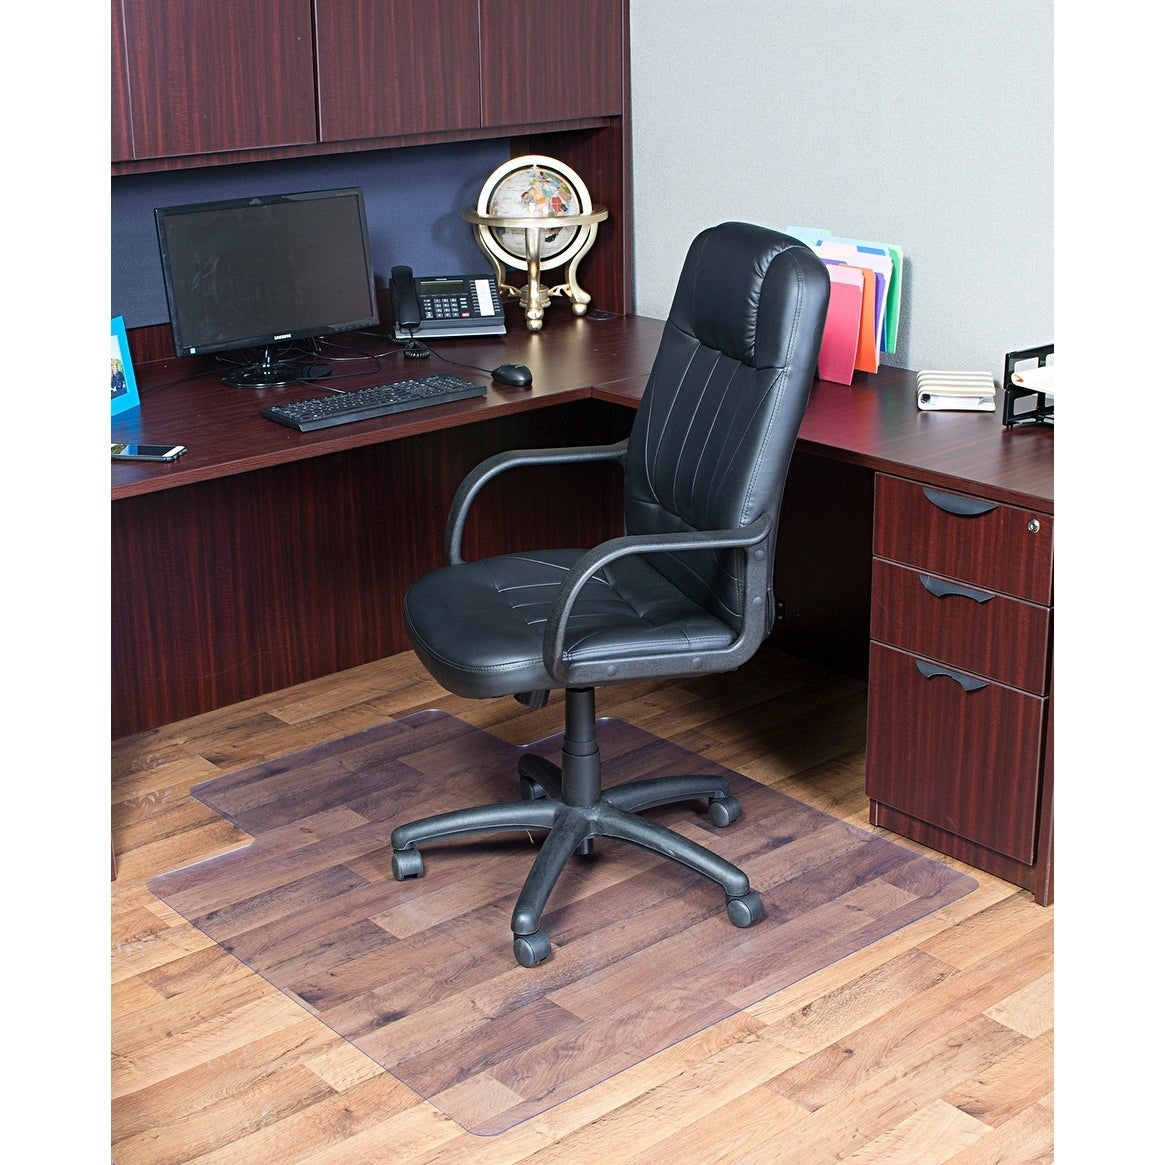 shop dimex 36 x 48 clear office chair mat with lip for hard floors